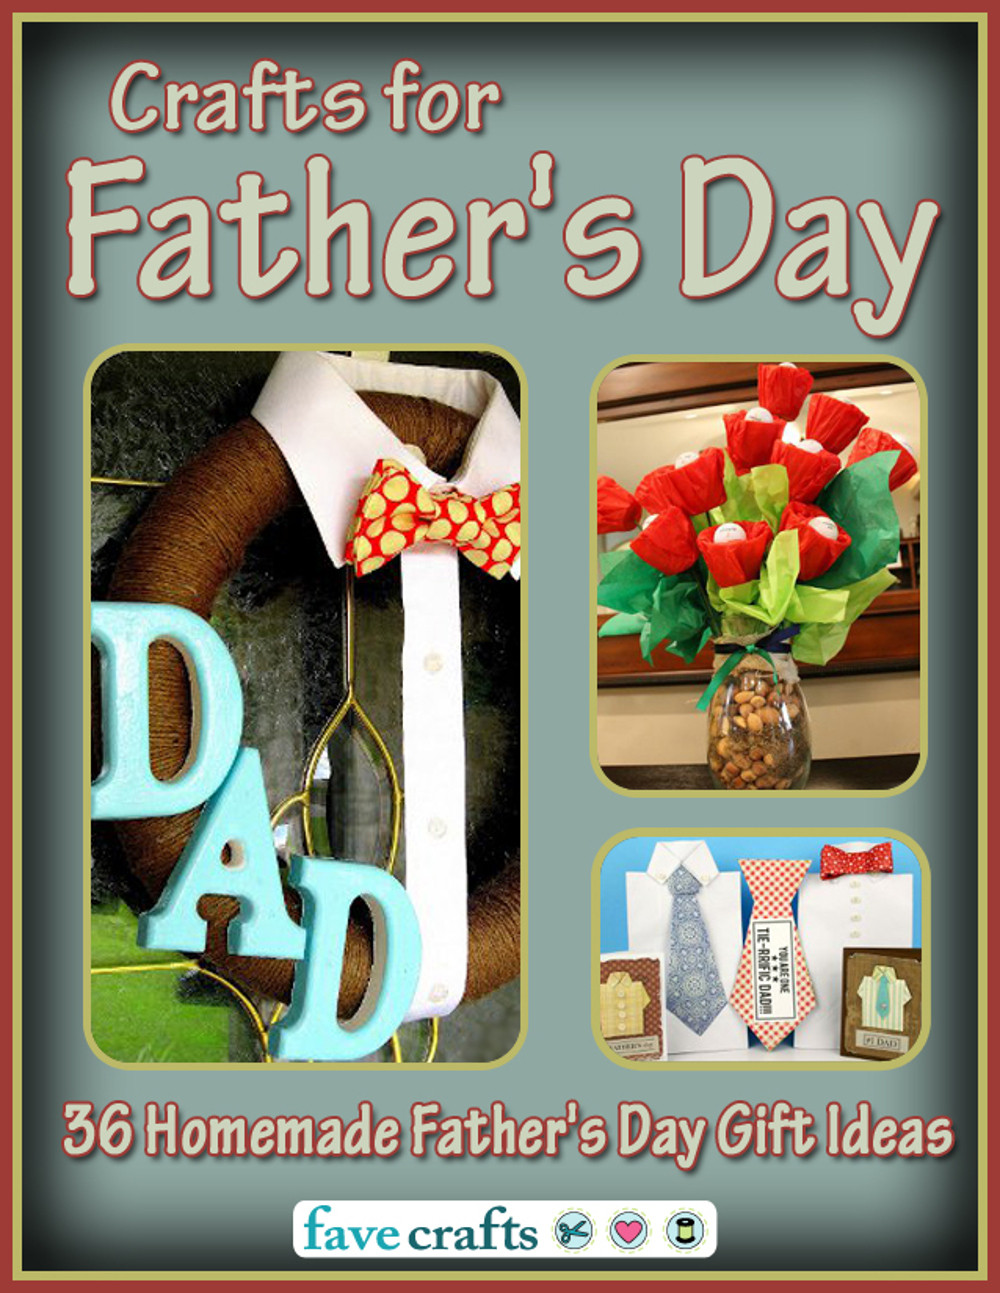 Diy Father'S Day Gift Ideas  Crafts for Father s Day 36 Homemade Father s Day Gift